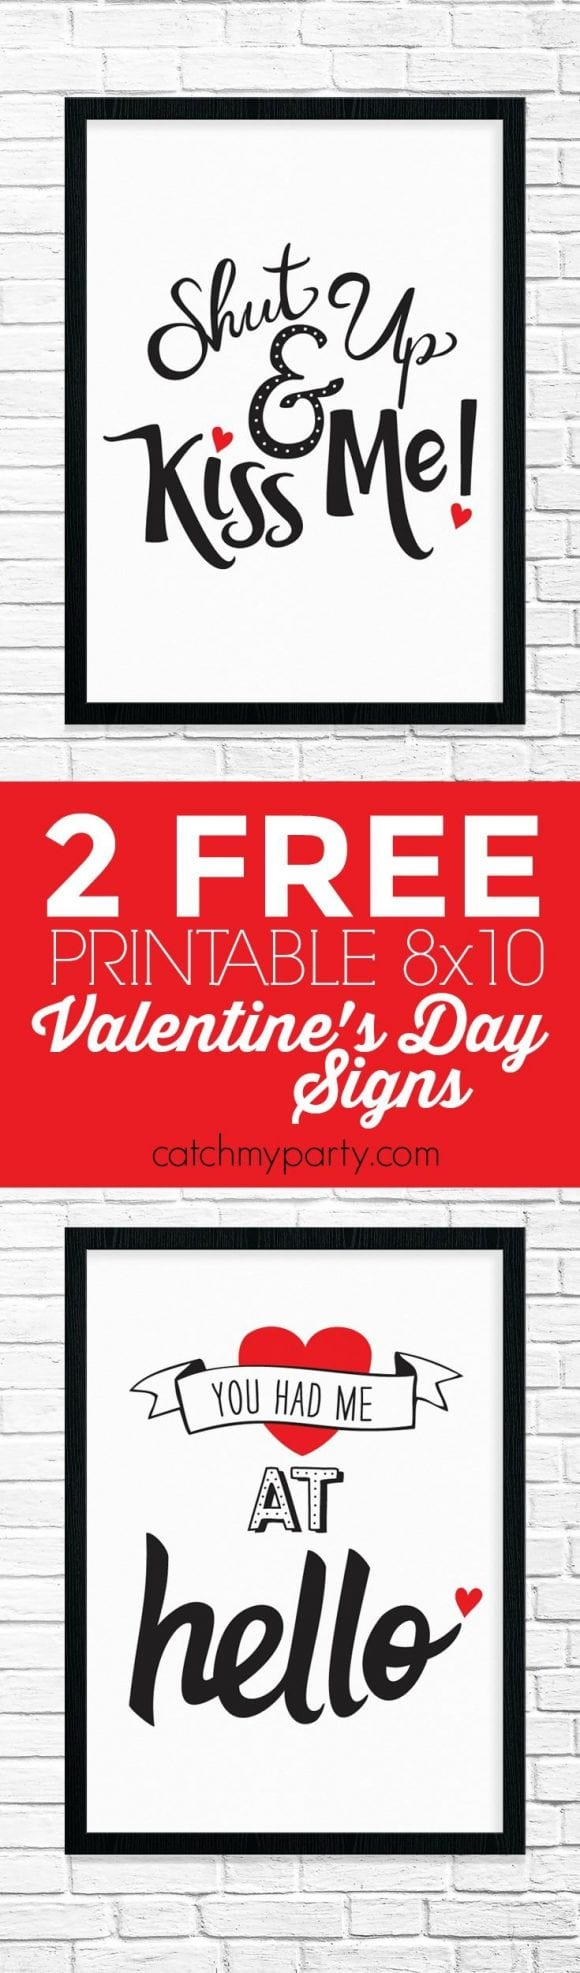 Free Printable Romantic Valentine's Day Signs | CatchMyParty.com